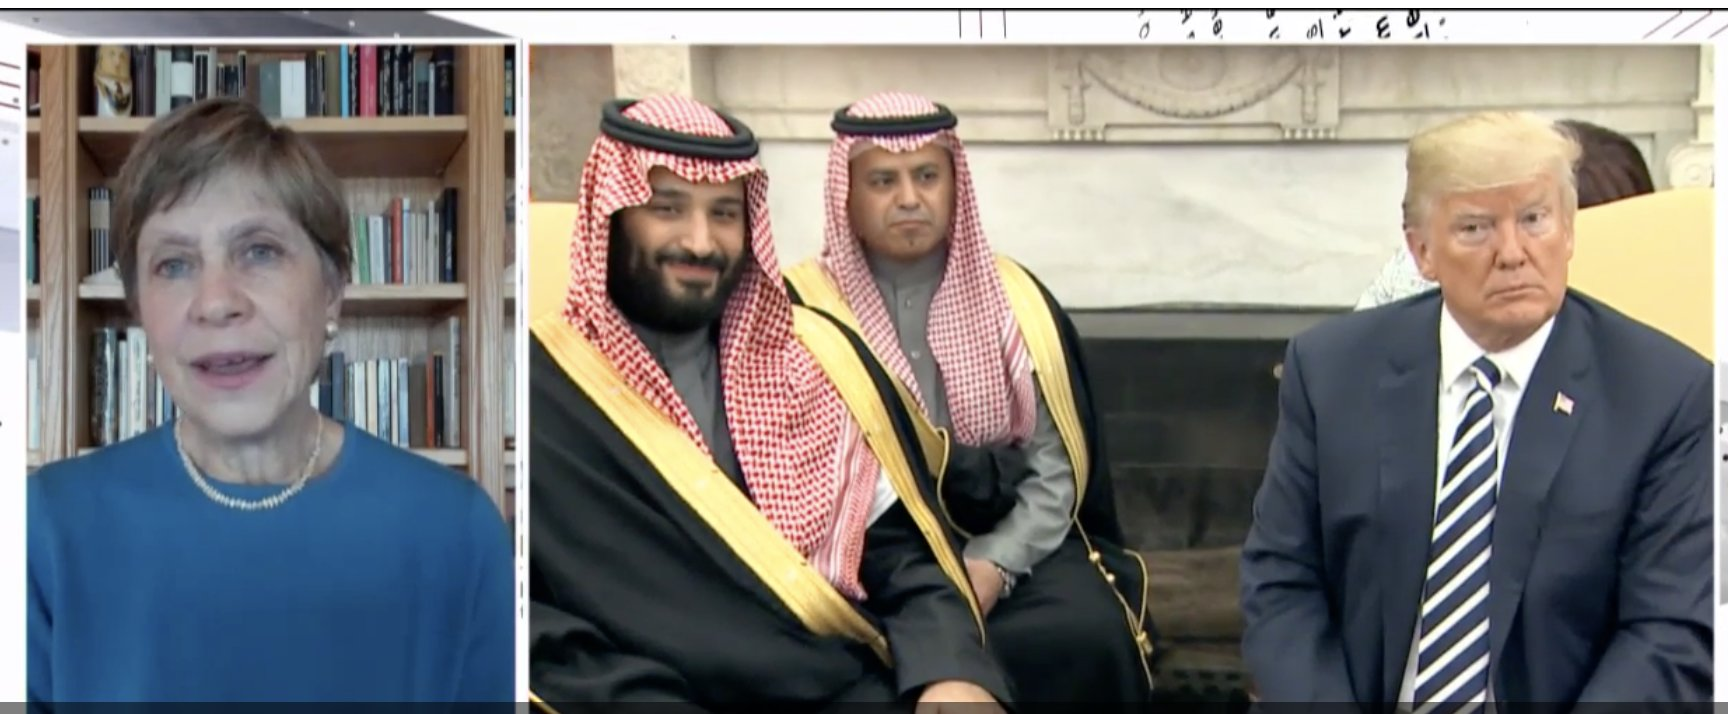 Mary Anne Marsh: What is the Trump, CIA and Saudi Arabia connection?